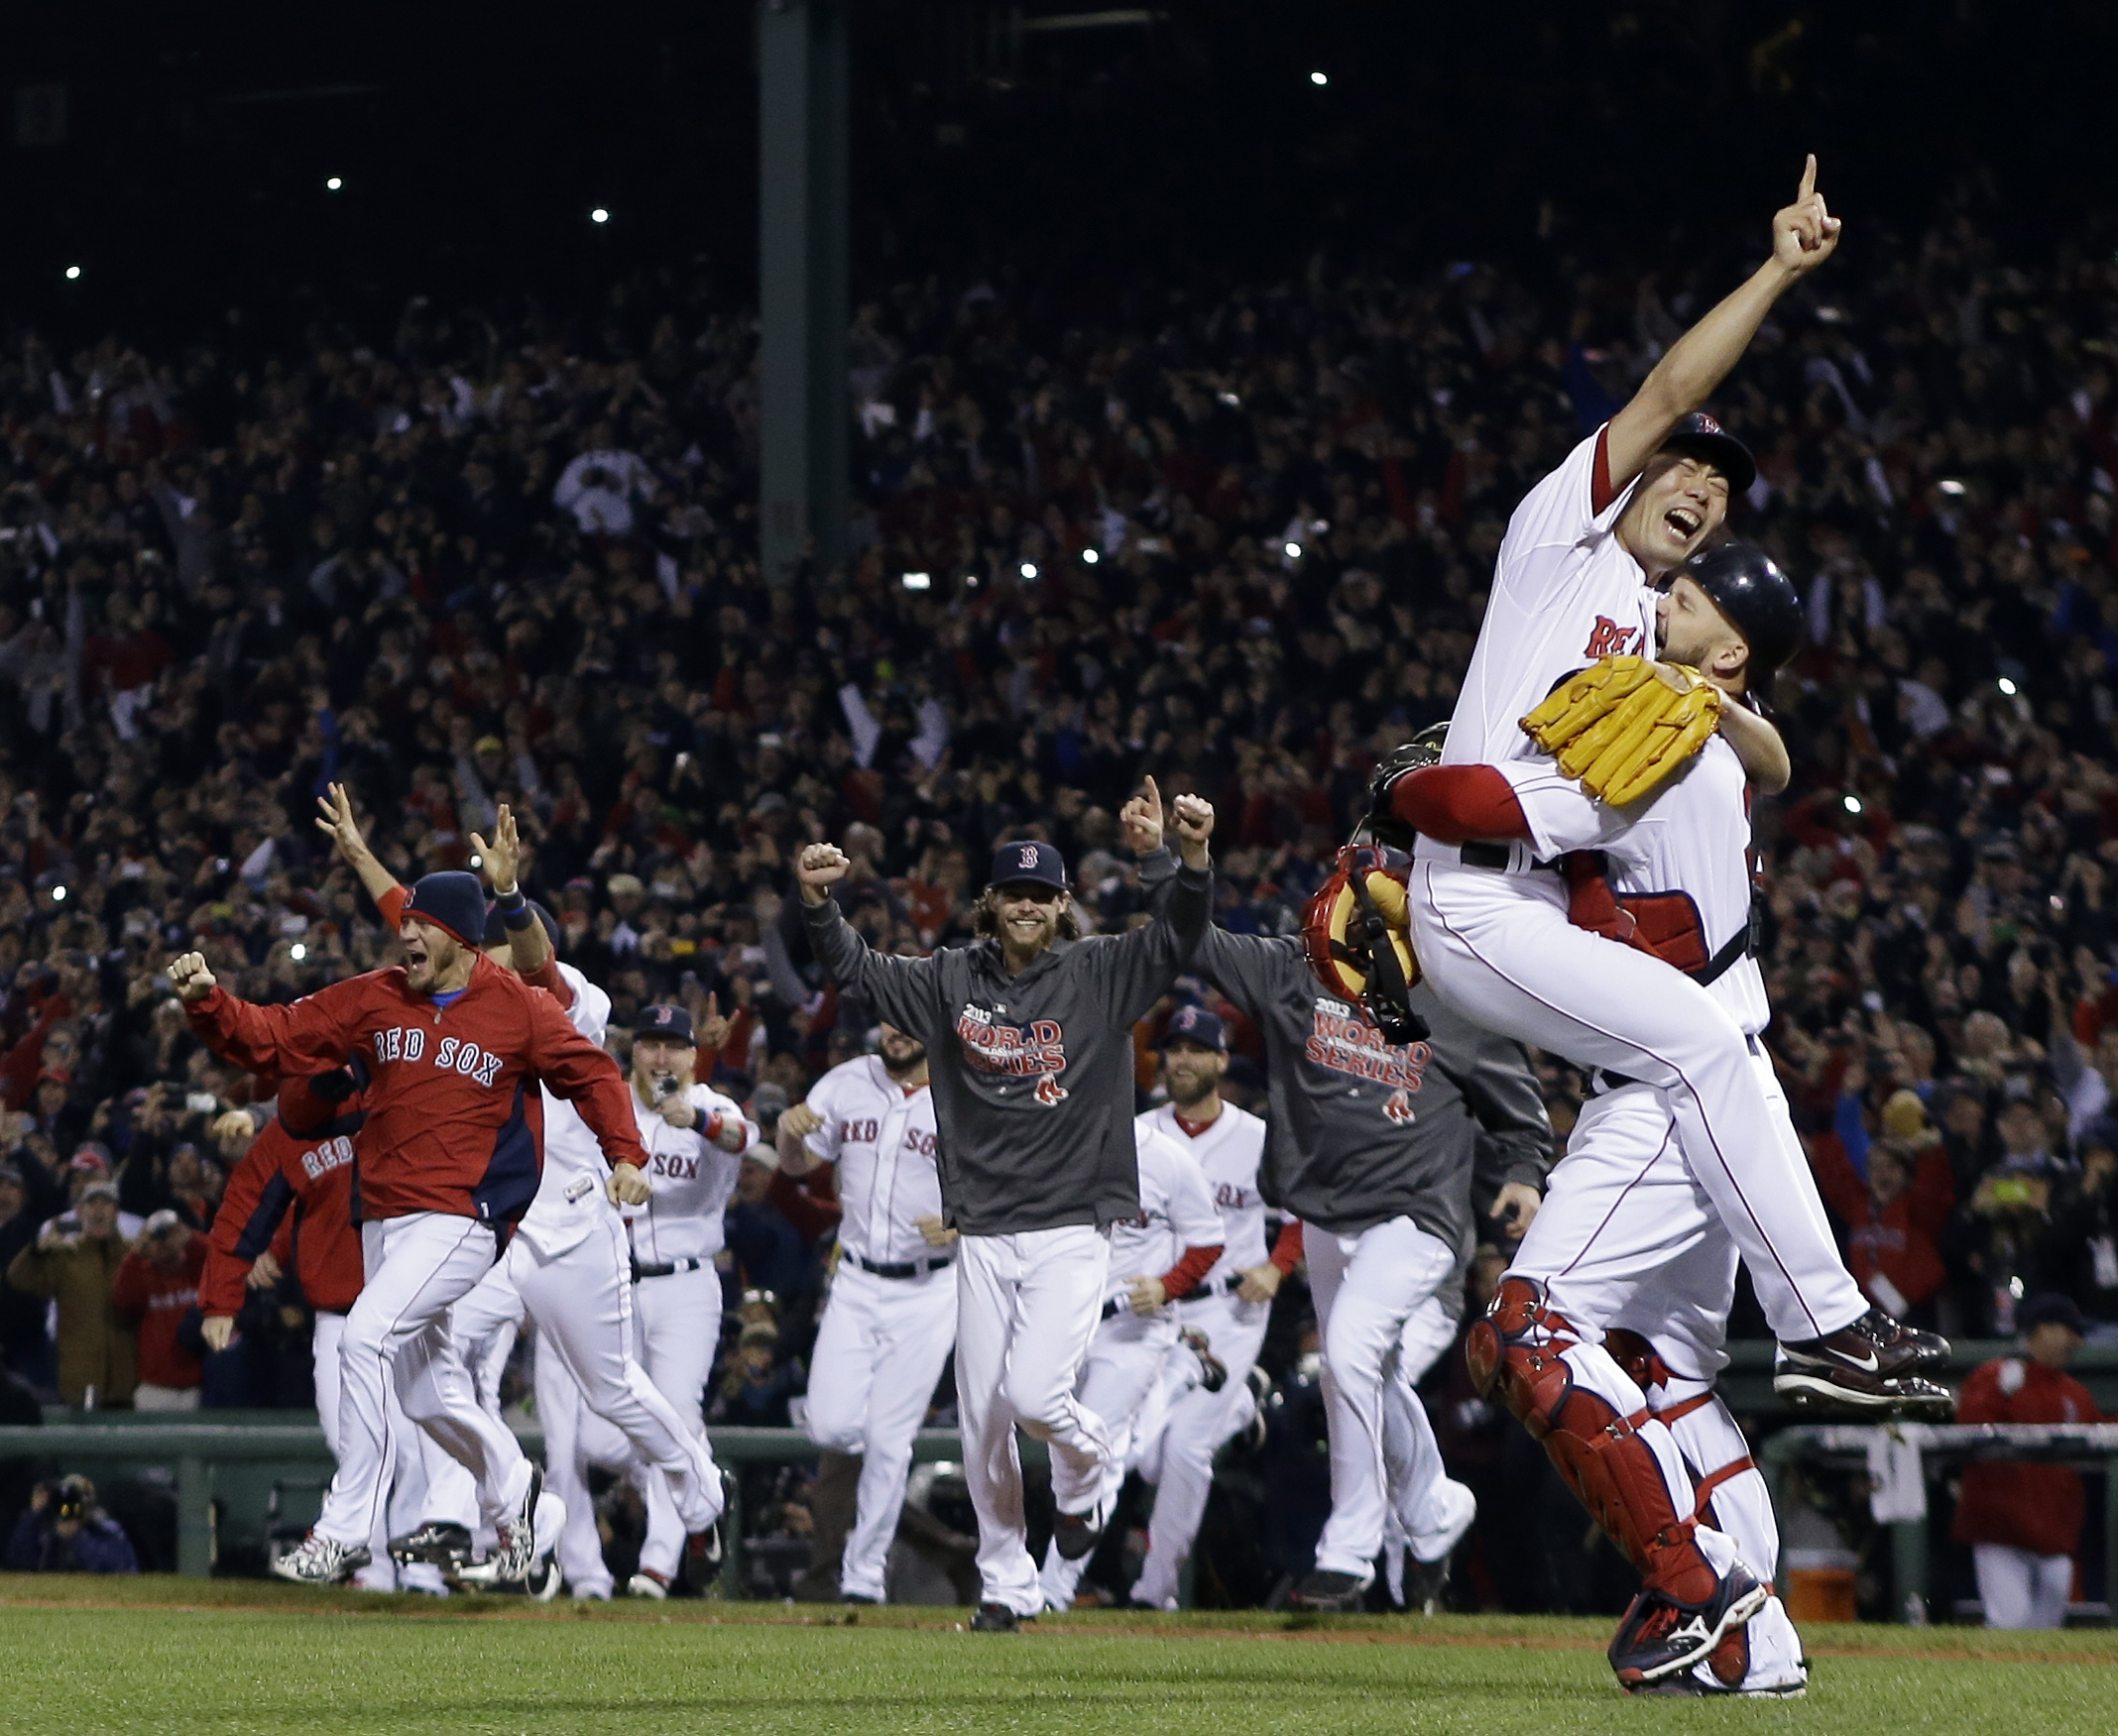 Image result for boston red sox win their first world series since 1918